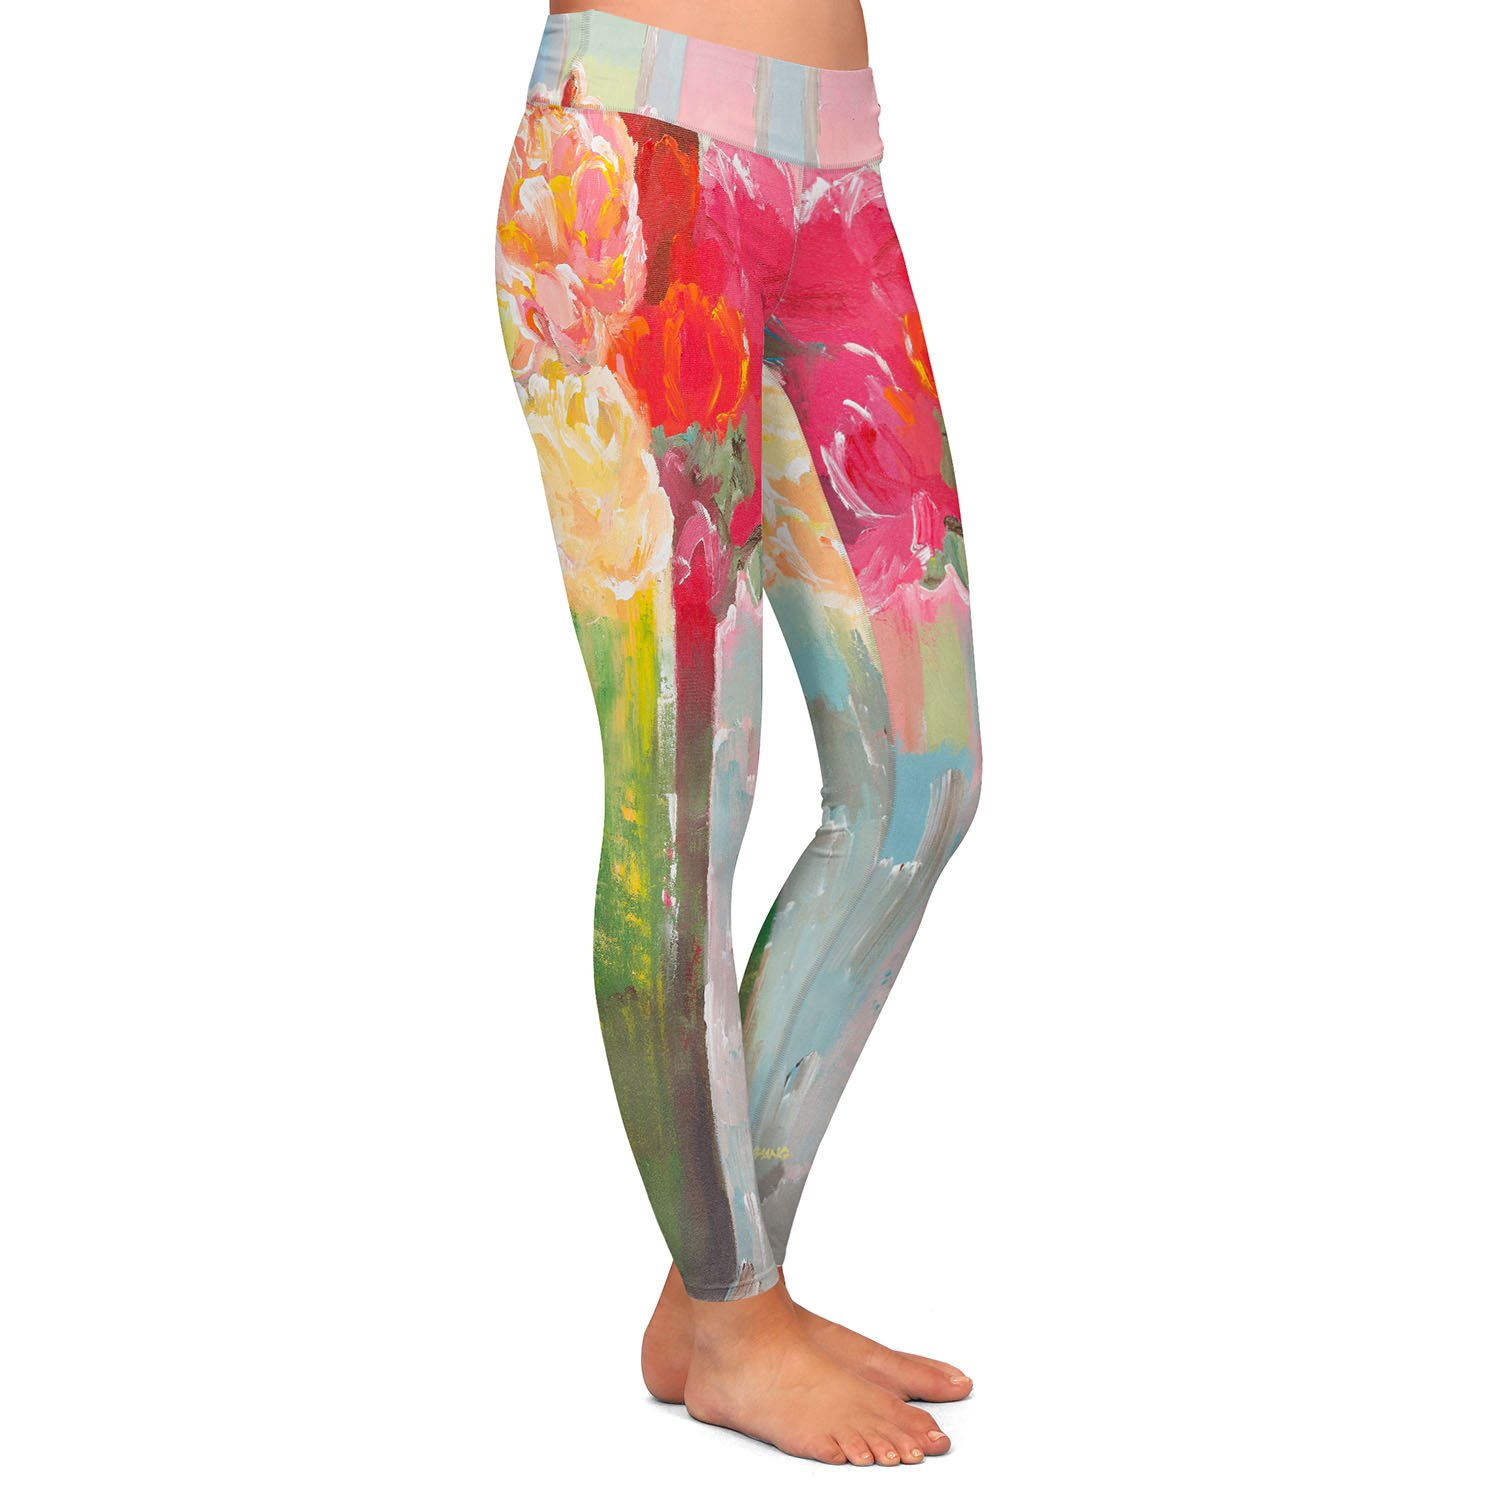 in The Sunlight Athletic Yoga Leggings from DiaNoche Designs by Hooshang Khorasani